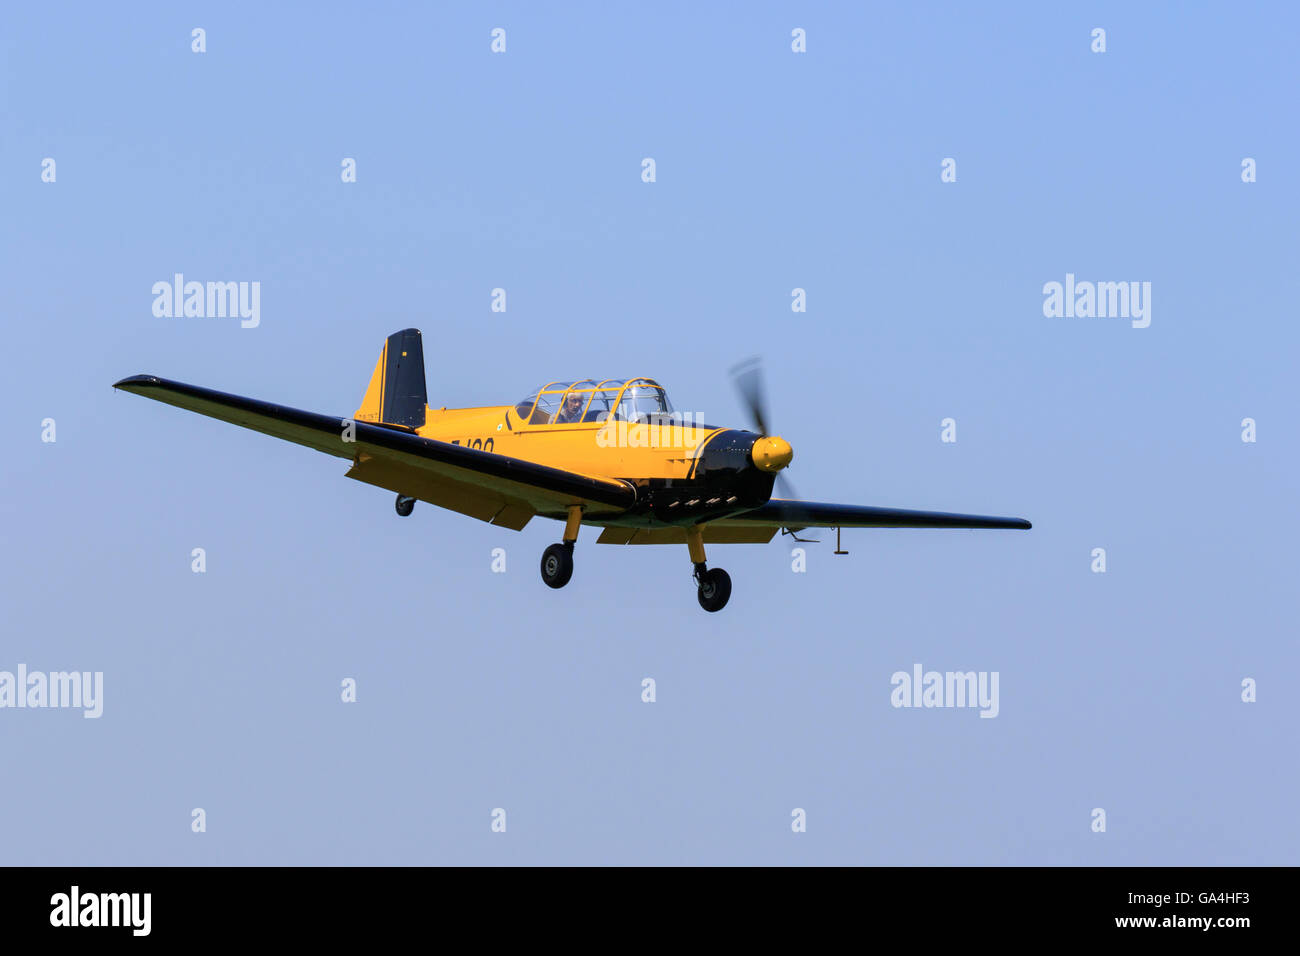 Zlin Z226T Trener G-EJGO on final approach to land at Sturgate Airfield - Stock Image